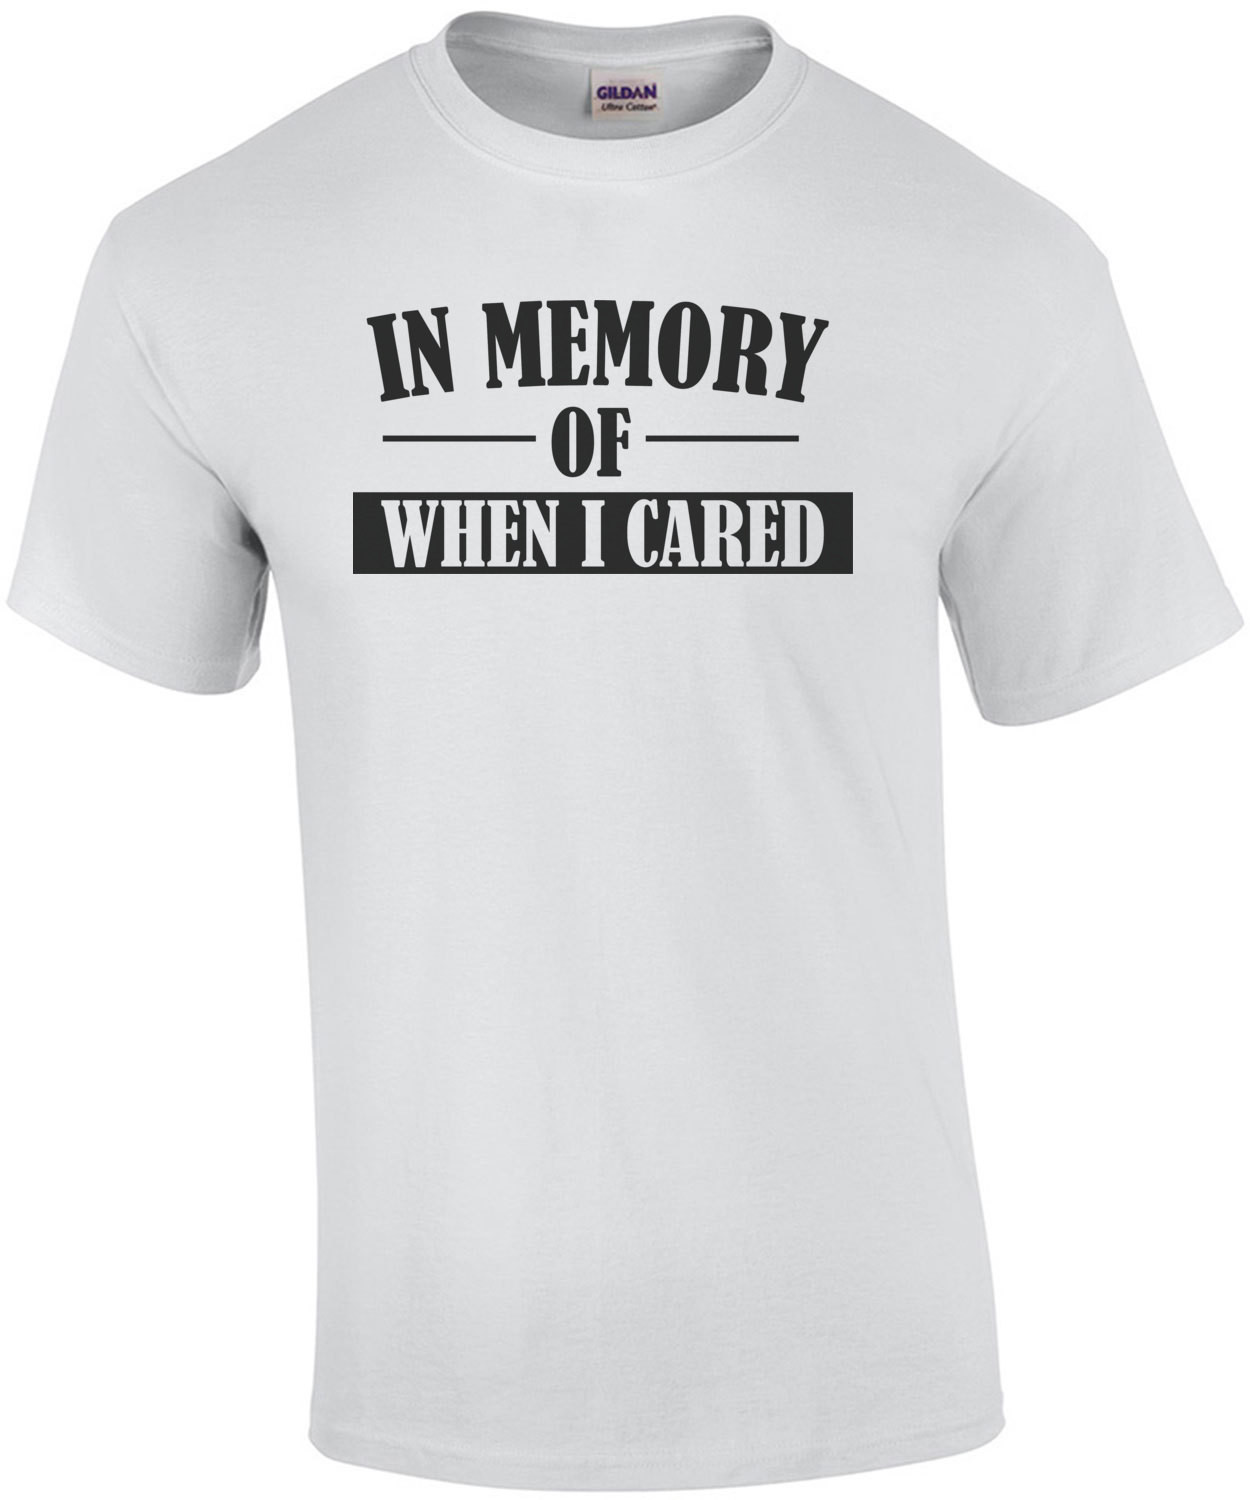 IN MEMORY OF WHEN I CARED. Shirt